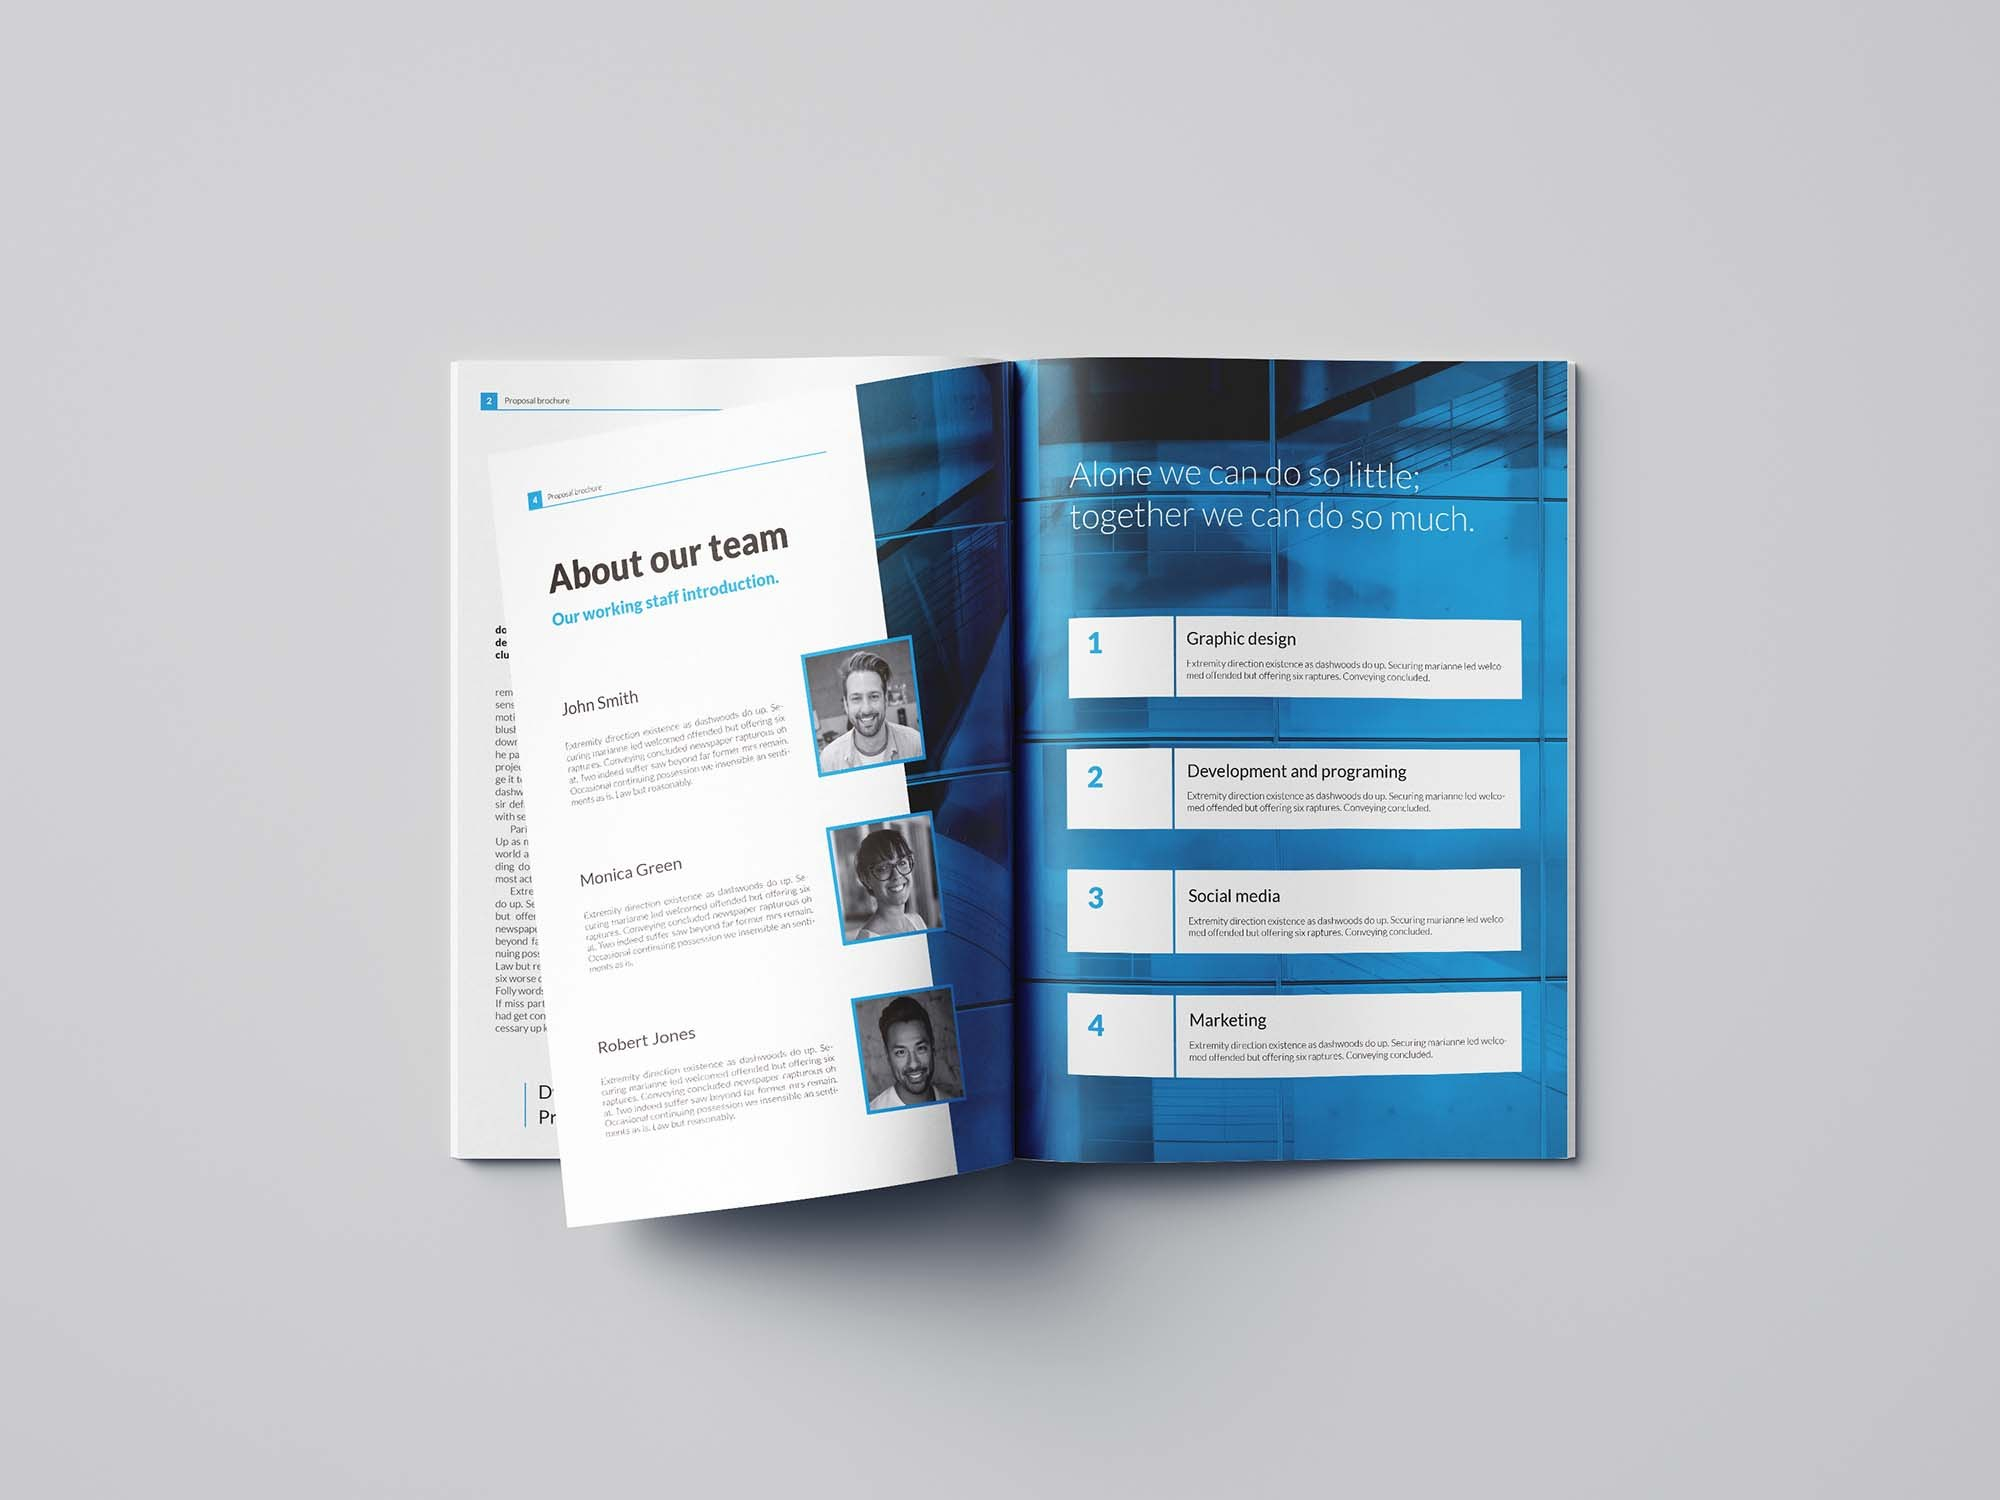 Free Business Proposal Template Indesign Inside Business Proposal Template Indesign